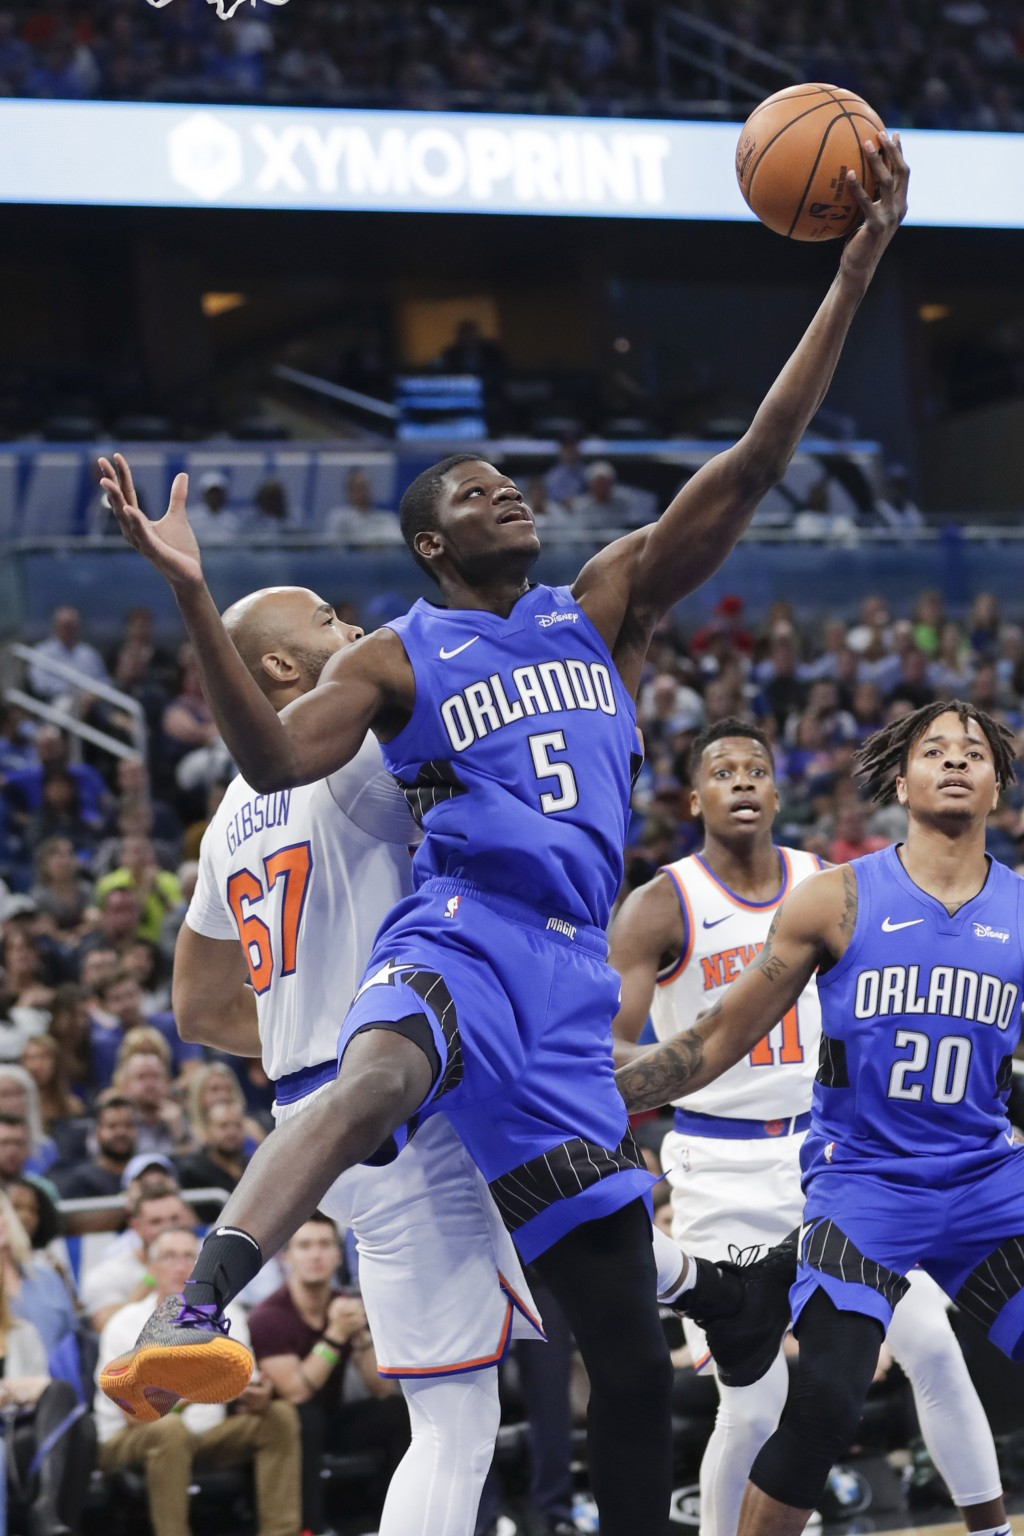 Orlando Magic's Mo Bamba (5) grabs a rebound in front of New York Knicks' Taj Gibson (67) as Markelle Fultz (20) looks on during the first half of an ...